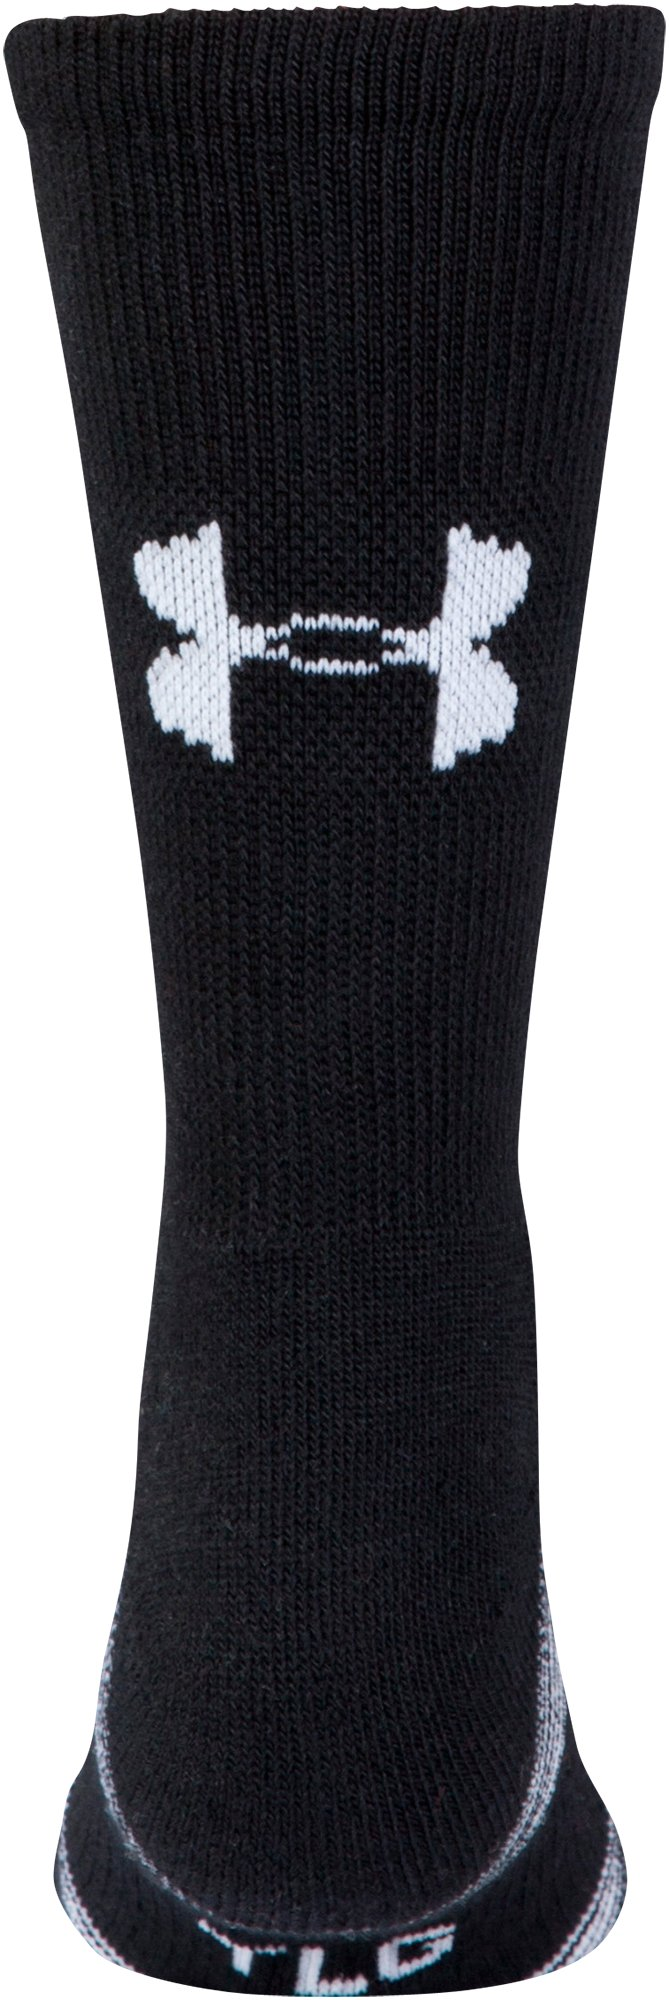 Kids' UA Team Crew Socks, Black